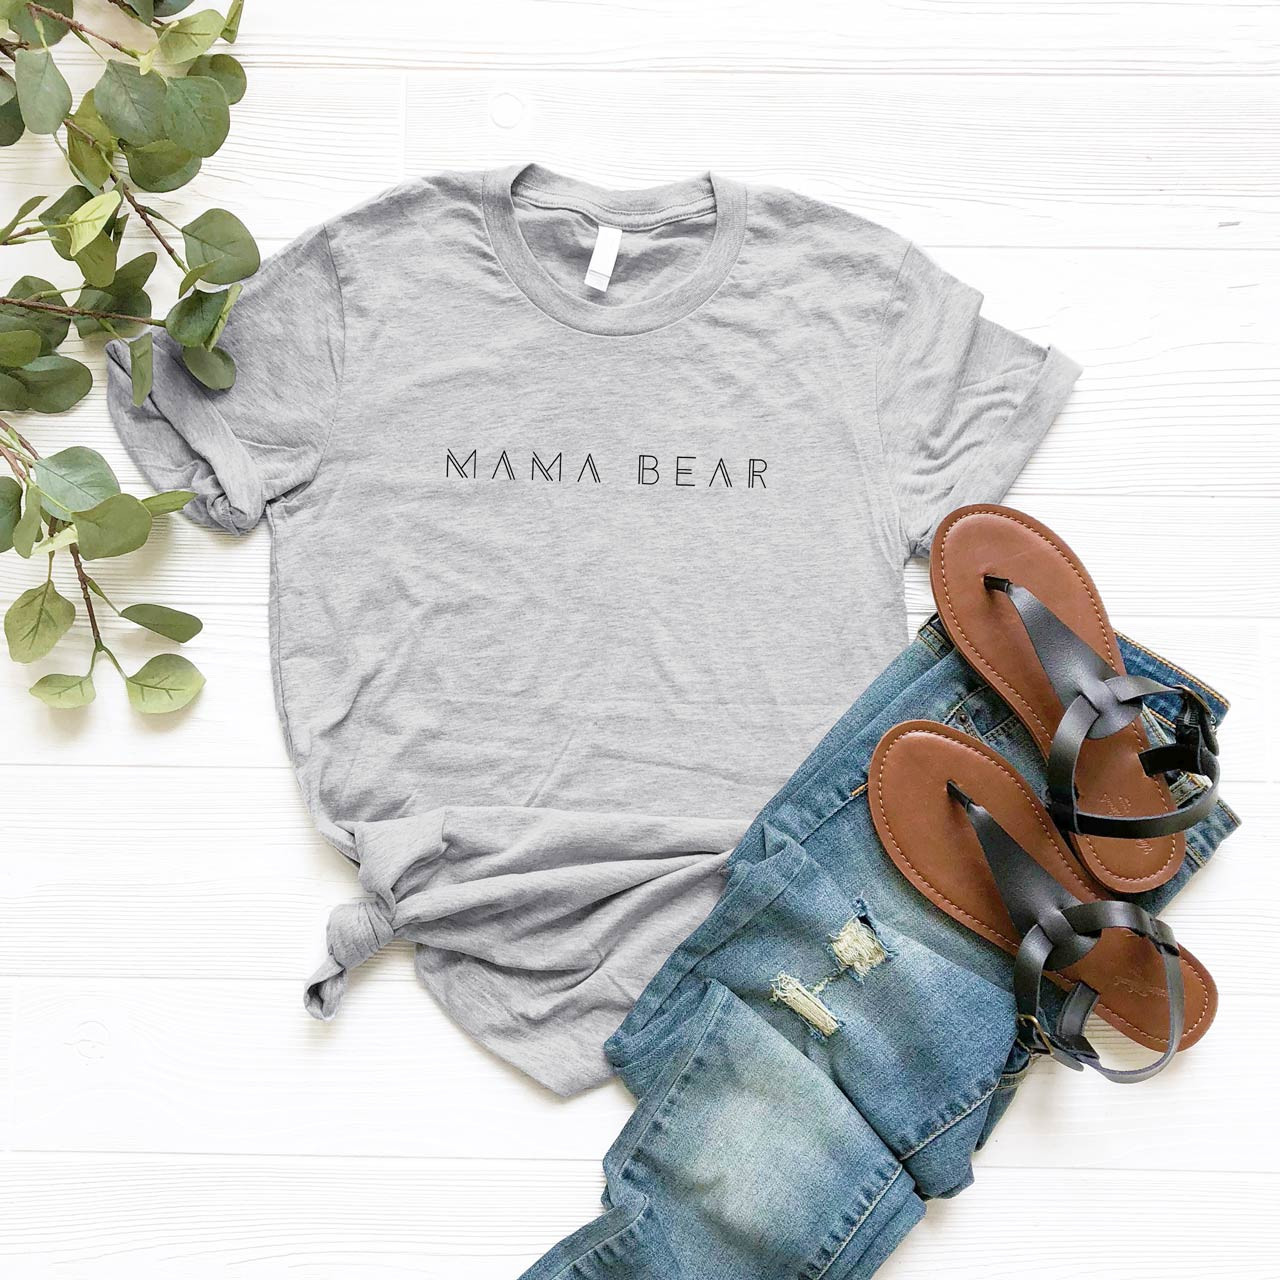 MAMA BEAR Cotton T-Shirt (Black on Gray) from The Printed Home